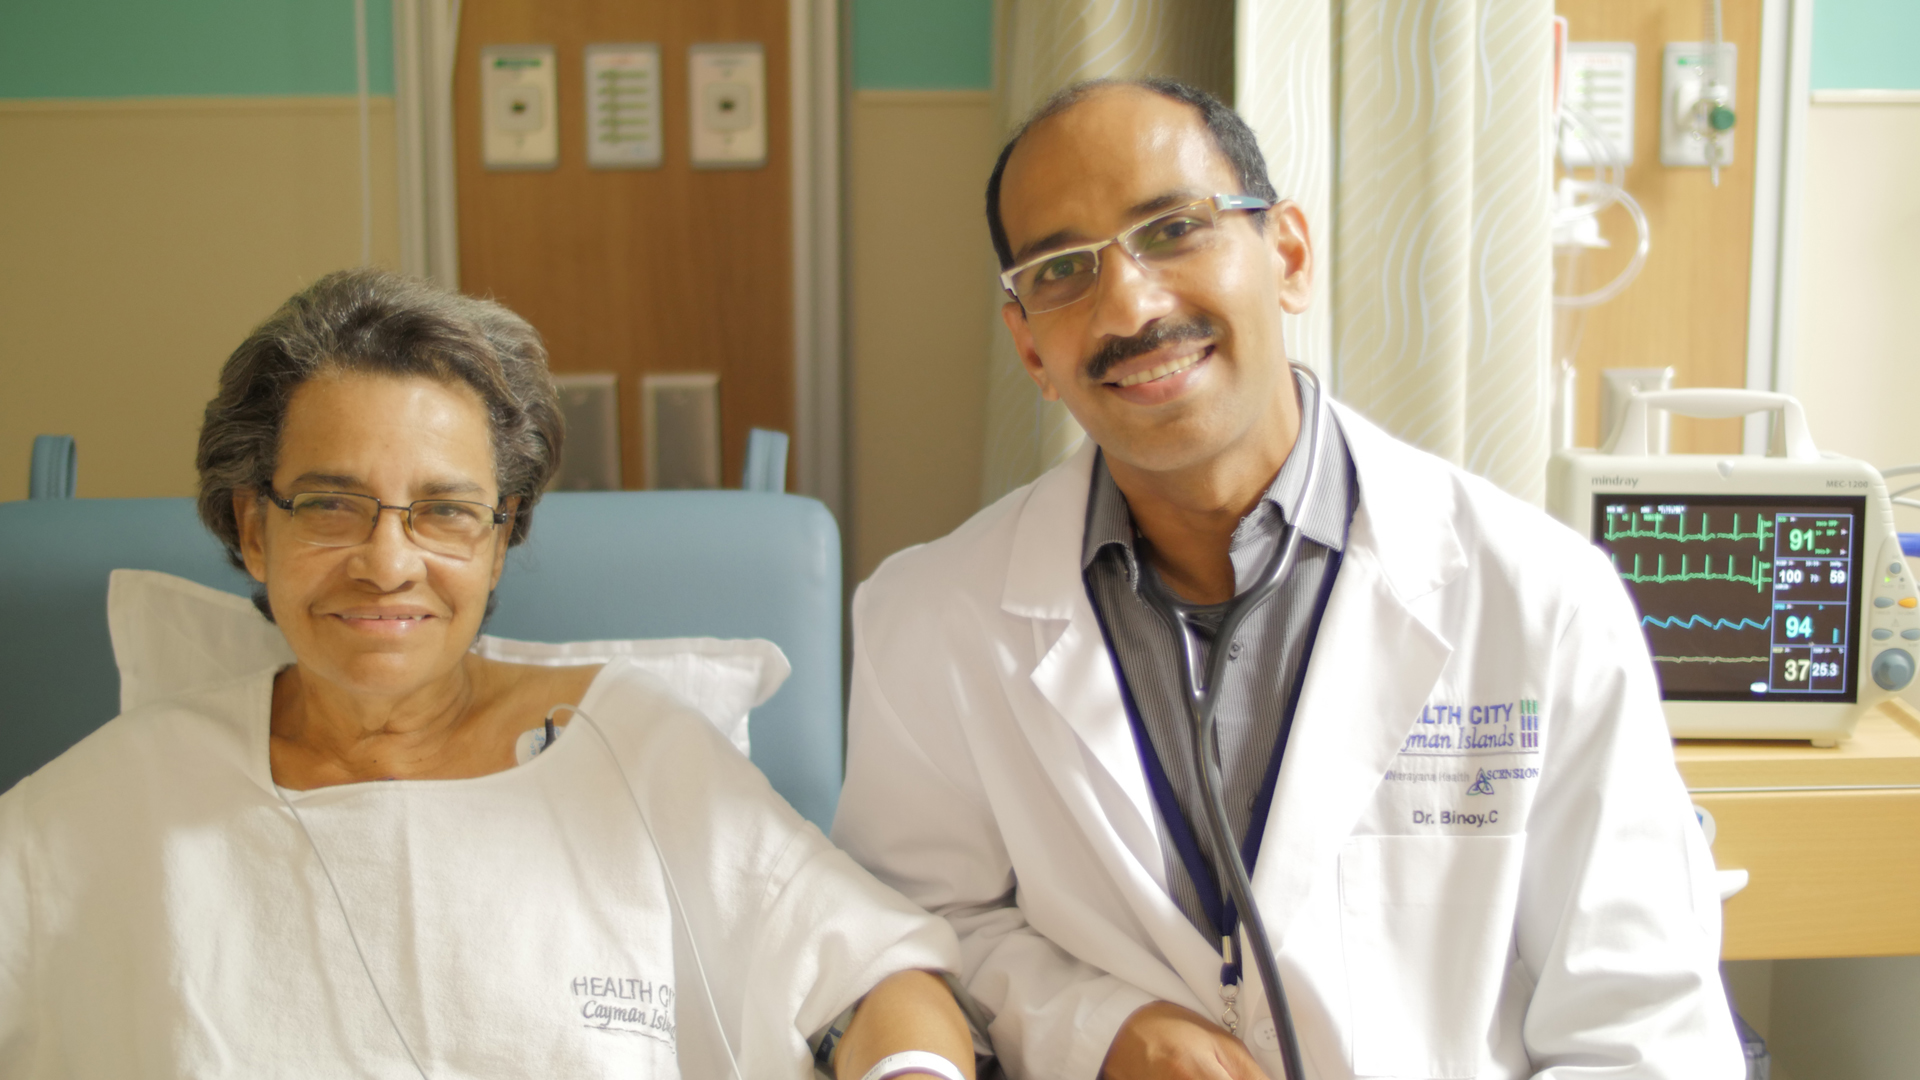 Dr Binoy and patient